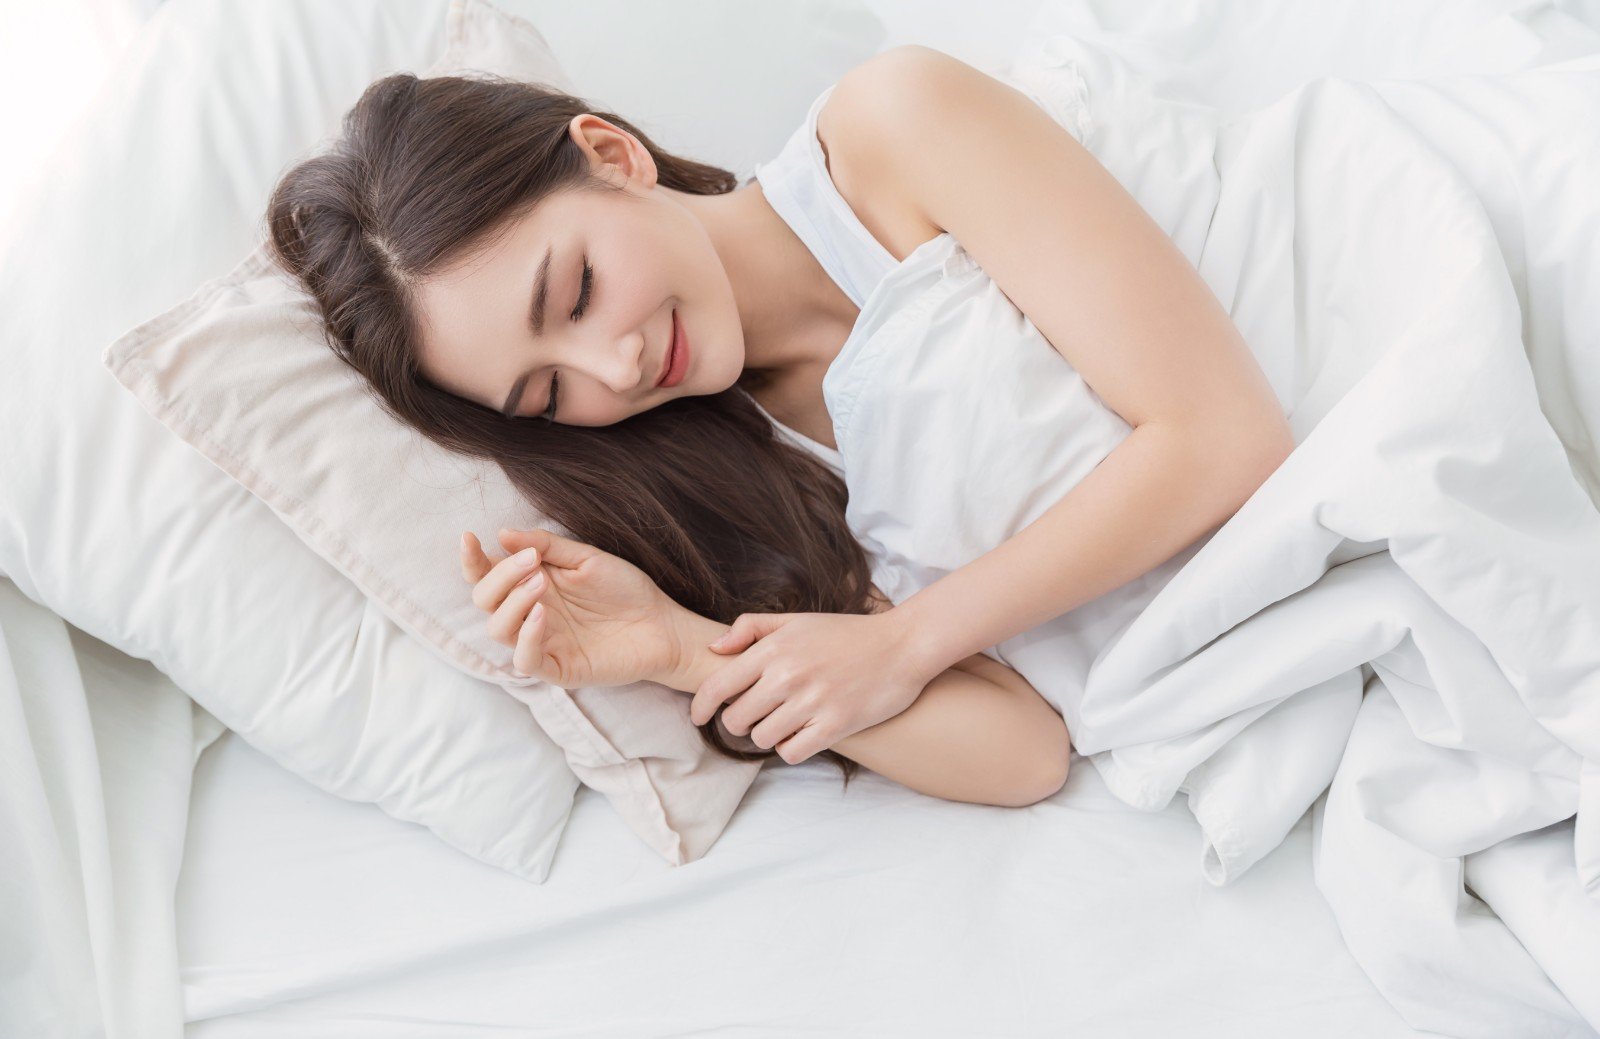 Sleep is a perfect moment to rejuvenate your body, as well as for your skin to repair itself after battling with free radicals, trauma, and harmful mi